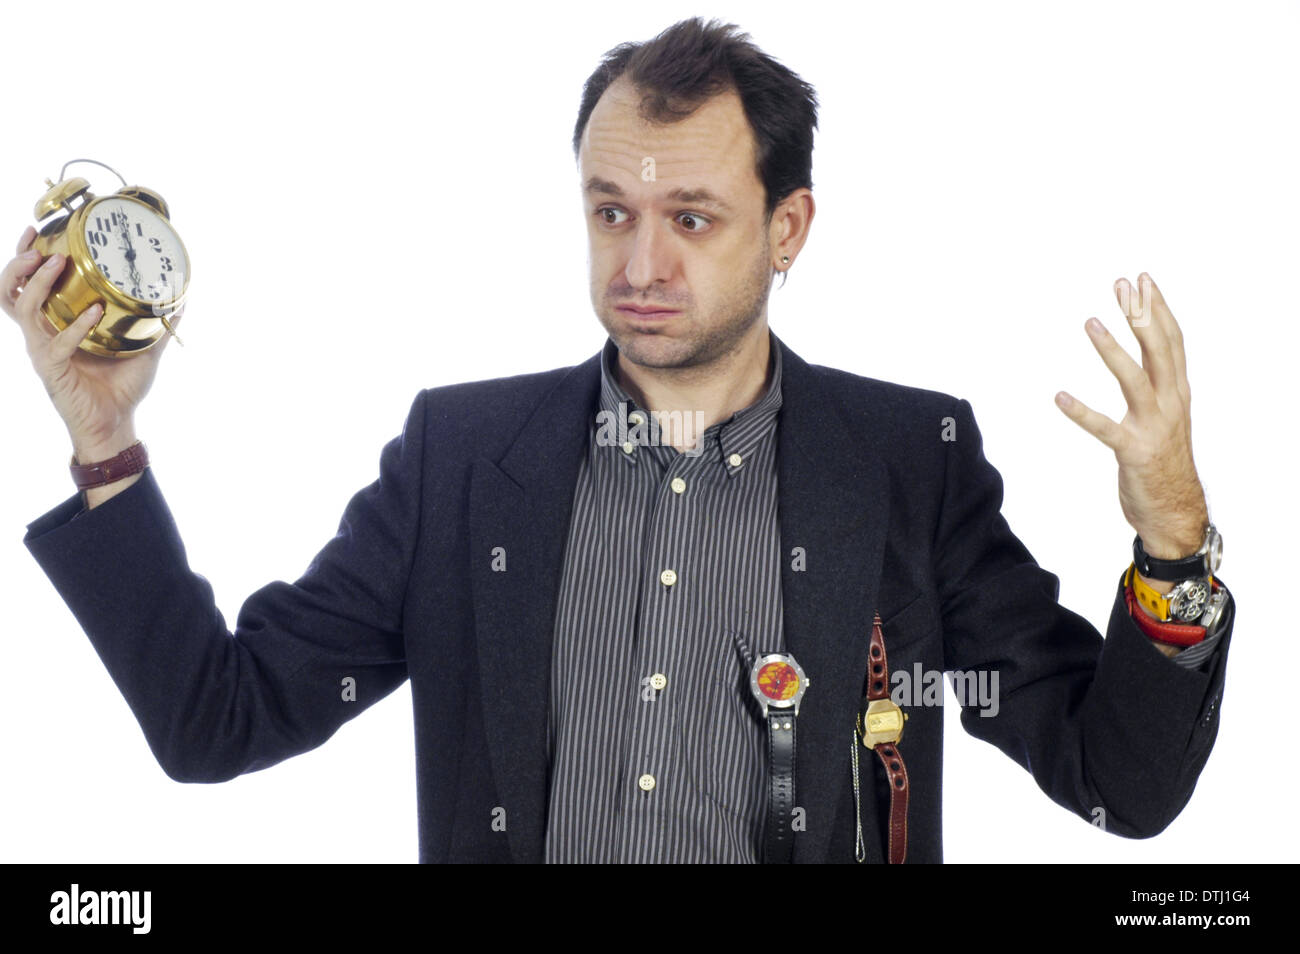 man with wristwatches and alarm clock being stressed out (model-released) - Stock Image